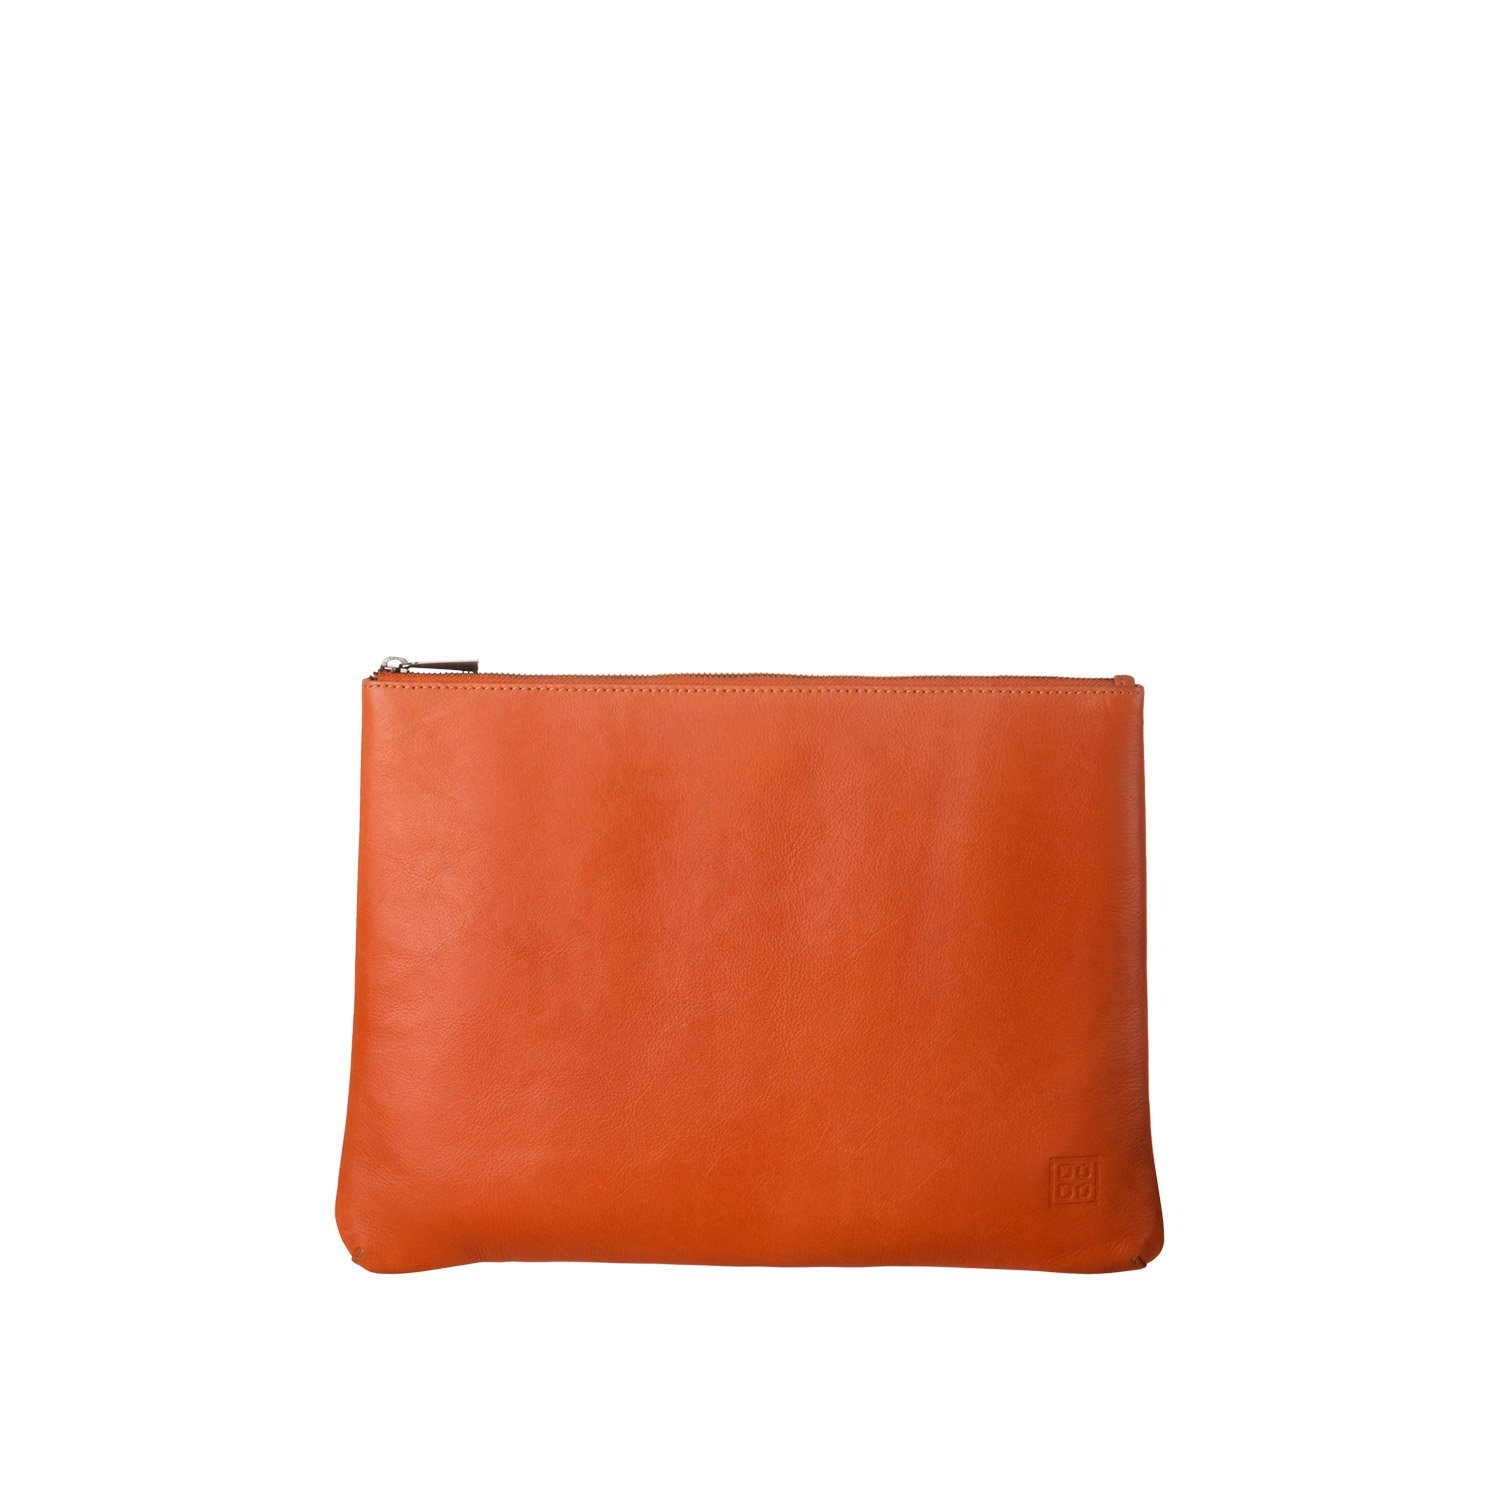 DUDU Clutch Bag Purse with Handle for ladies and men in Real Leather Slim & Large Handbag with Zipper closure - Isa - Orange